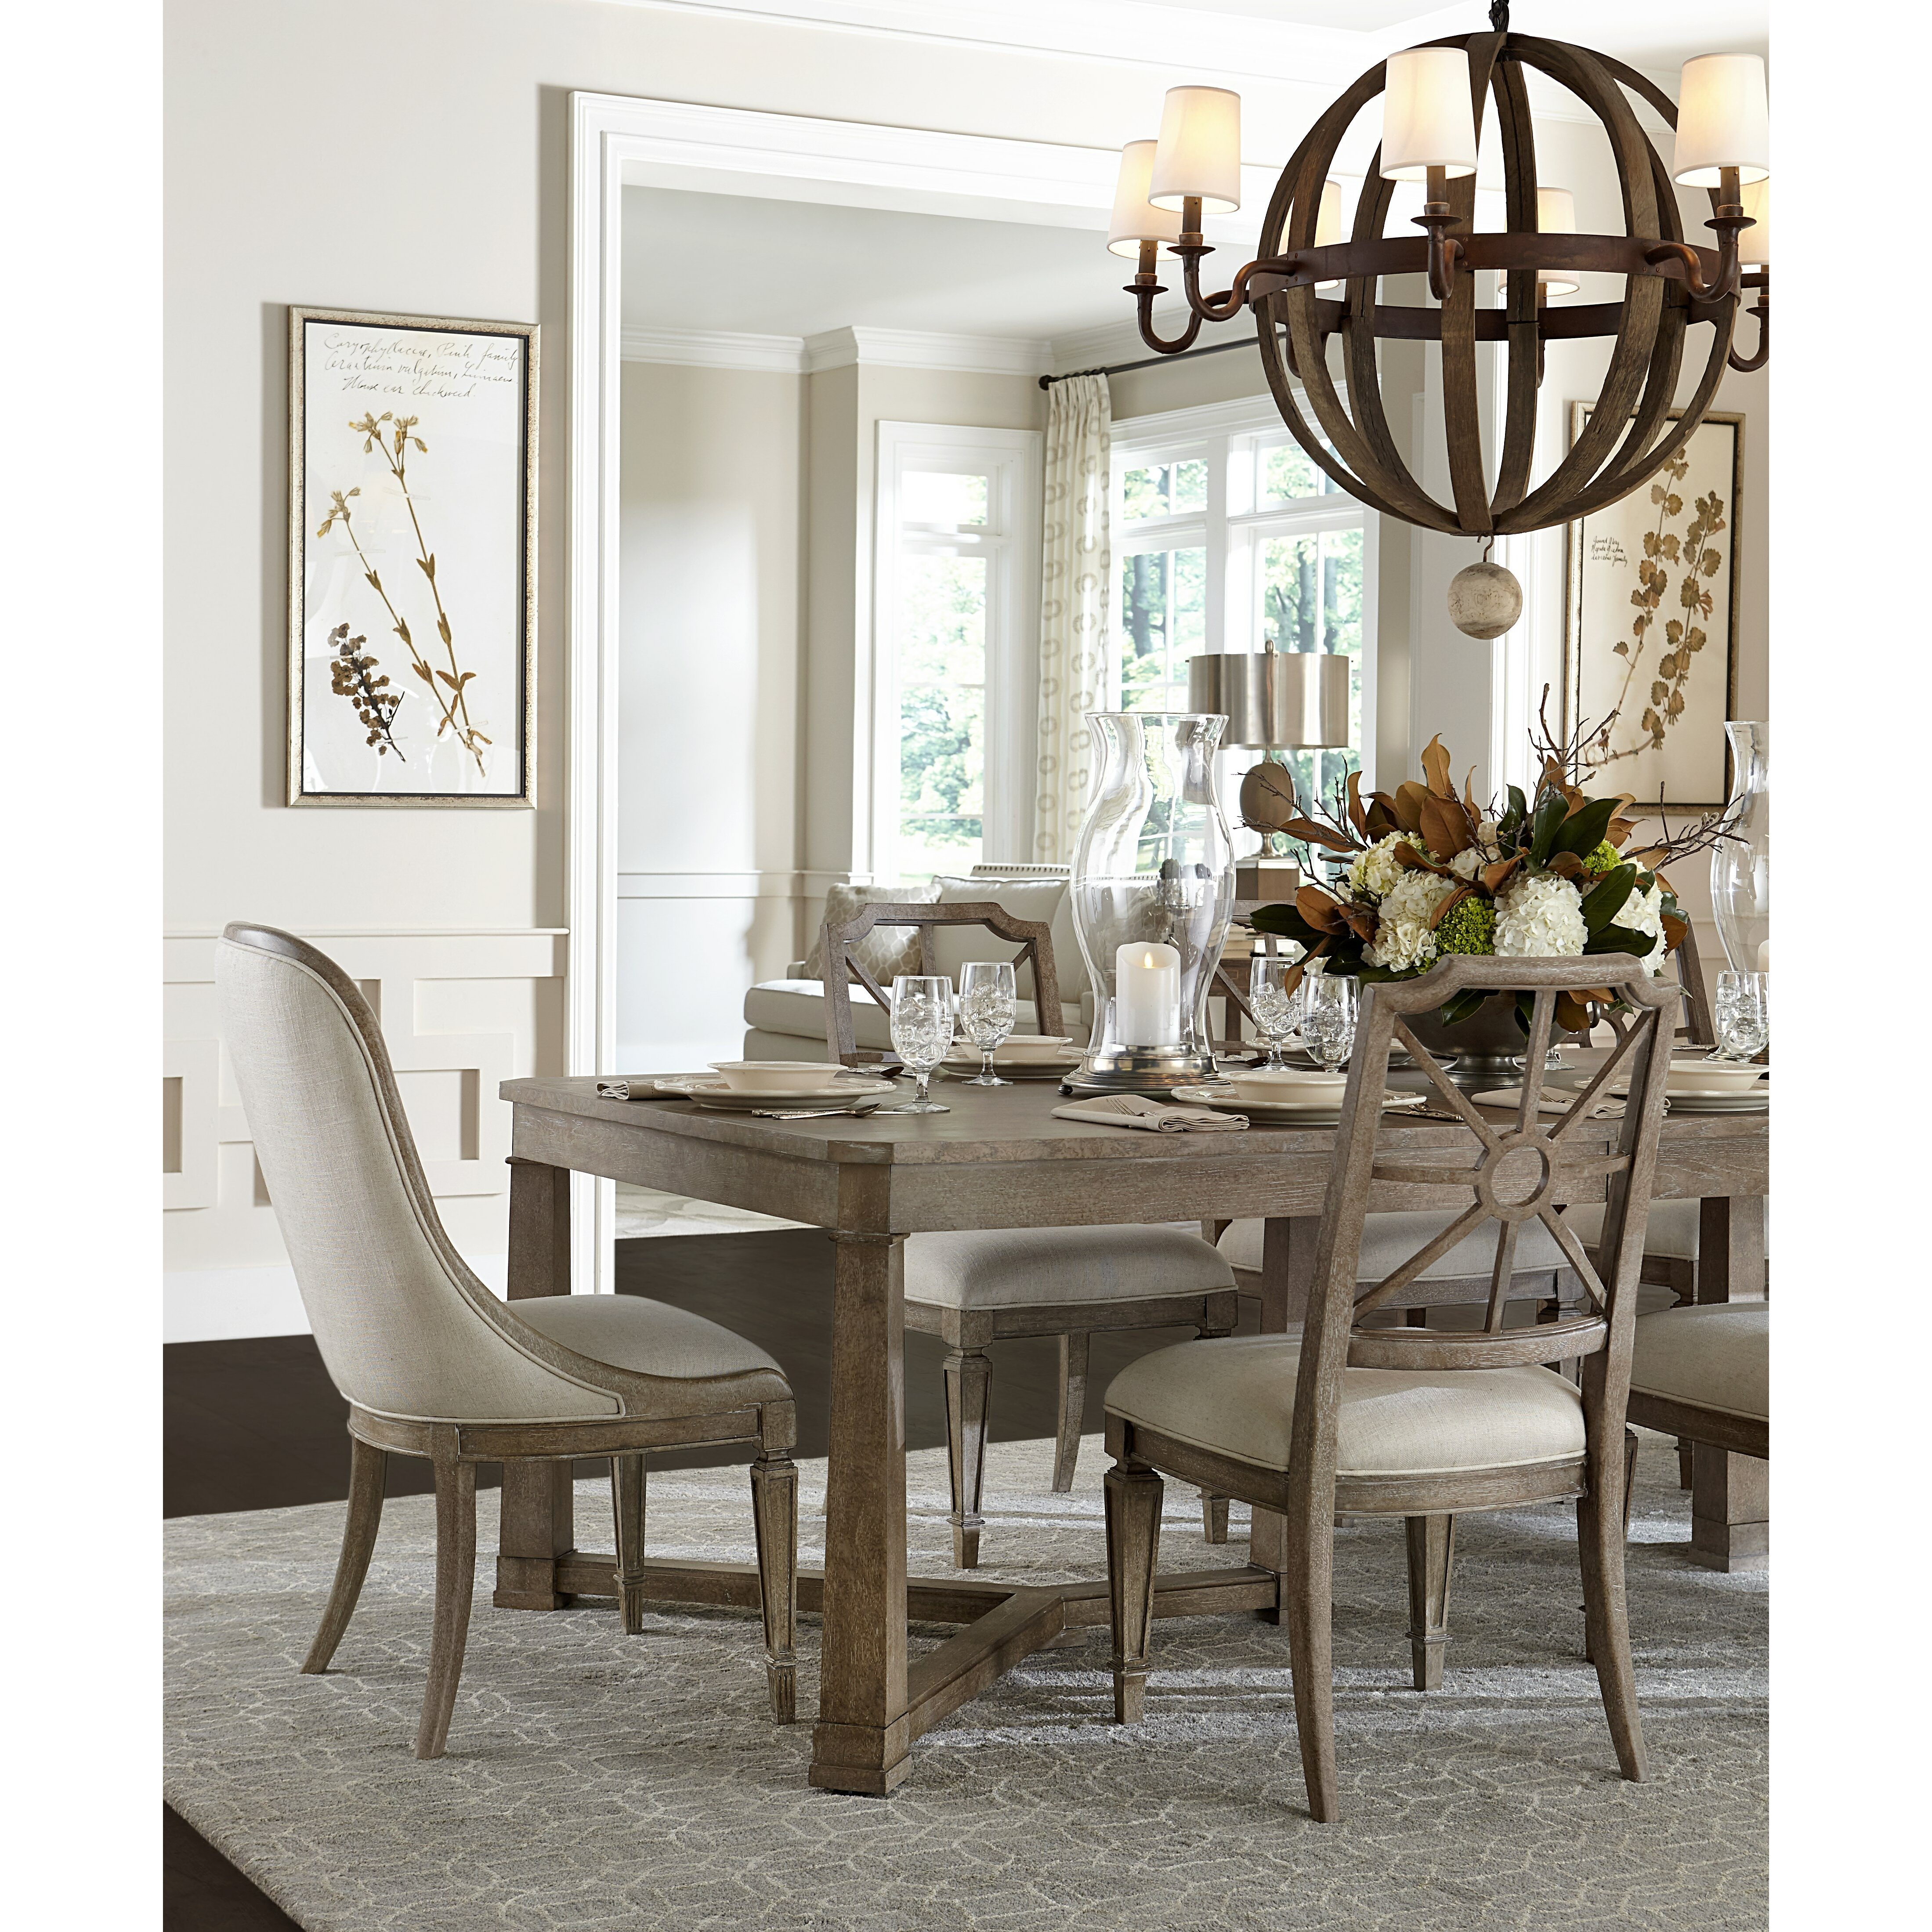 Avalon Heights Stanley Furniture Dining Room Set Bettrpiccom. Stanley Dining Room Sets   ktvb us